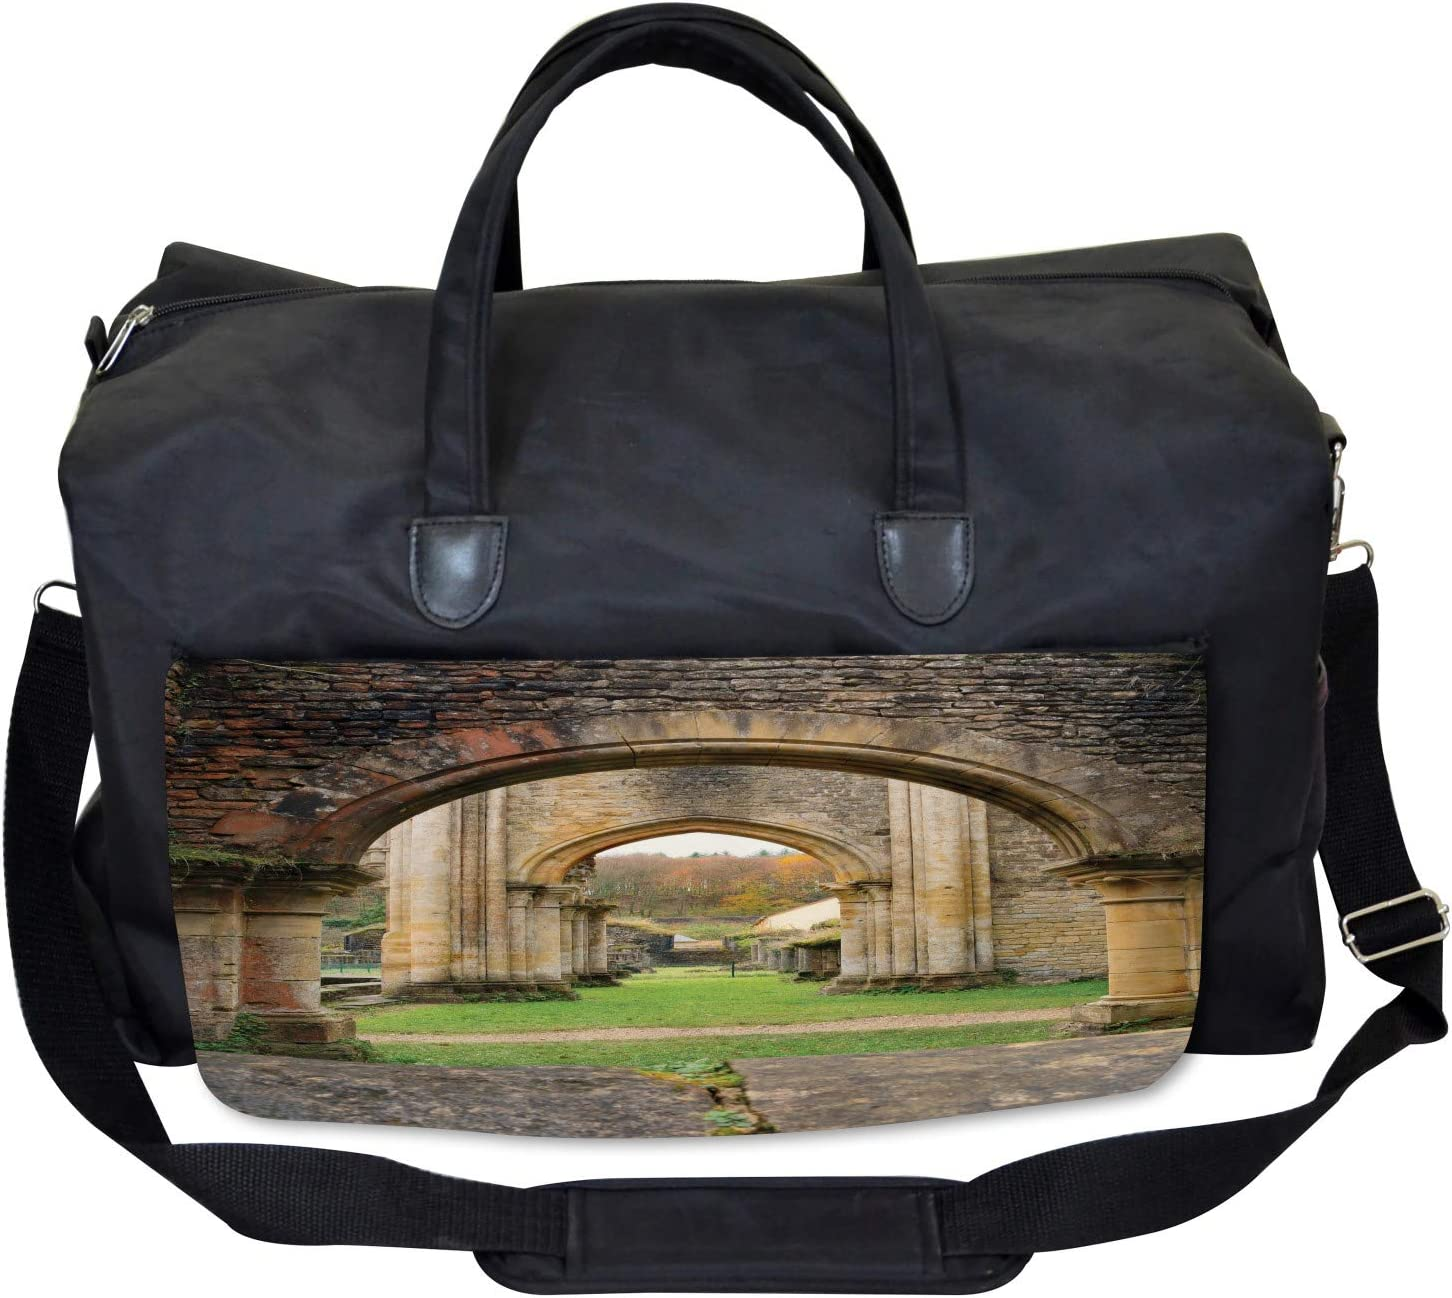 Autumn Ruins View Ambesonne Antique Gym Bag Large Weekender Carry-on